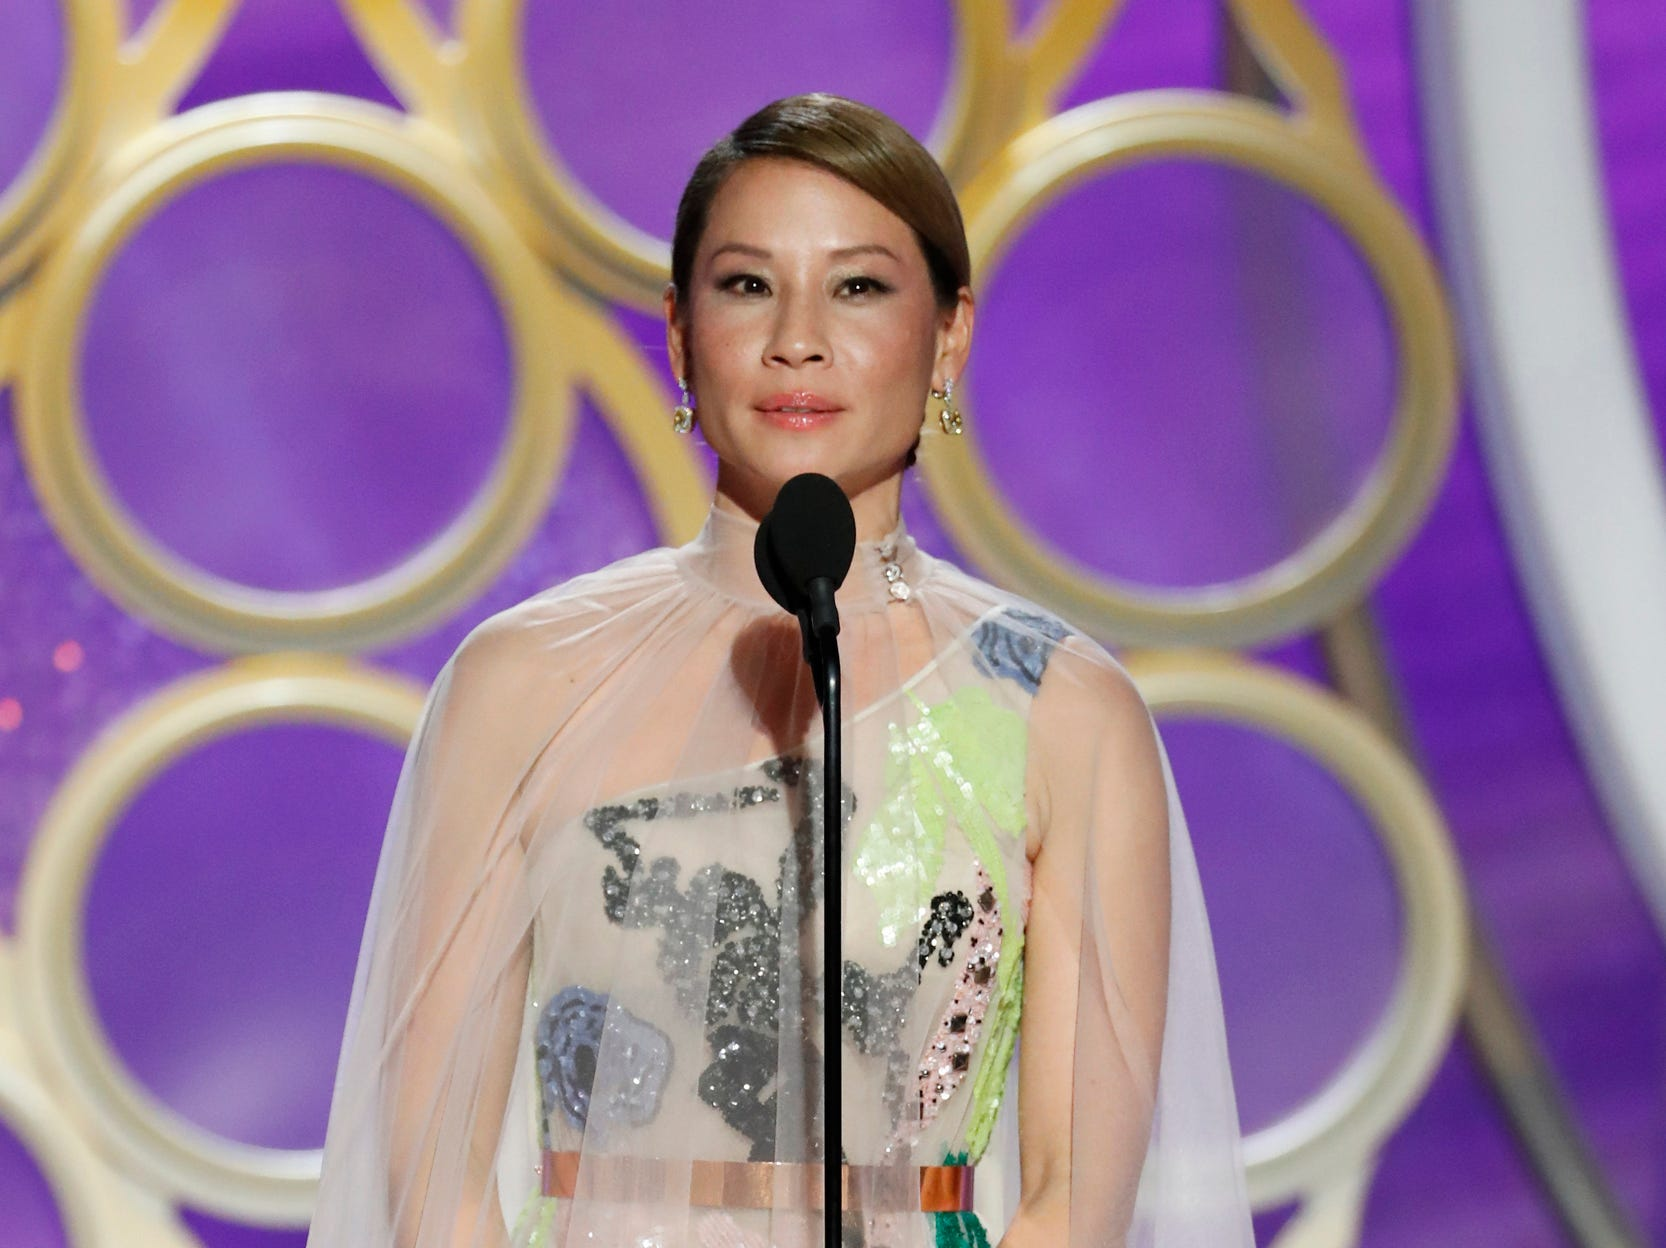 This image released by NBC shows presenter Lucy Liu during the 76th Annual Golden Globe Awards at the Beverly Hilton Hotel.